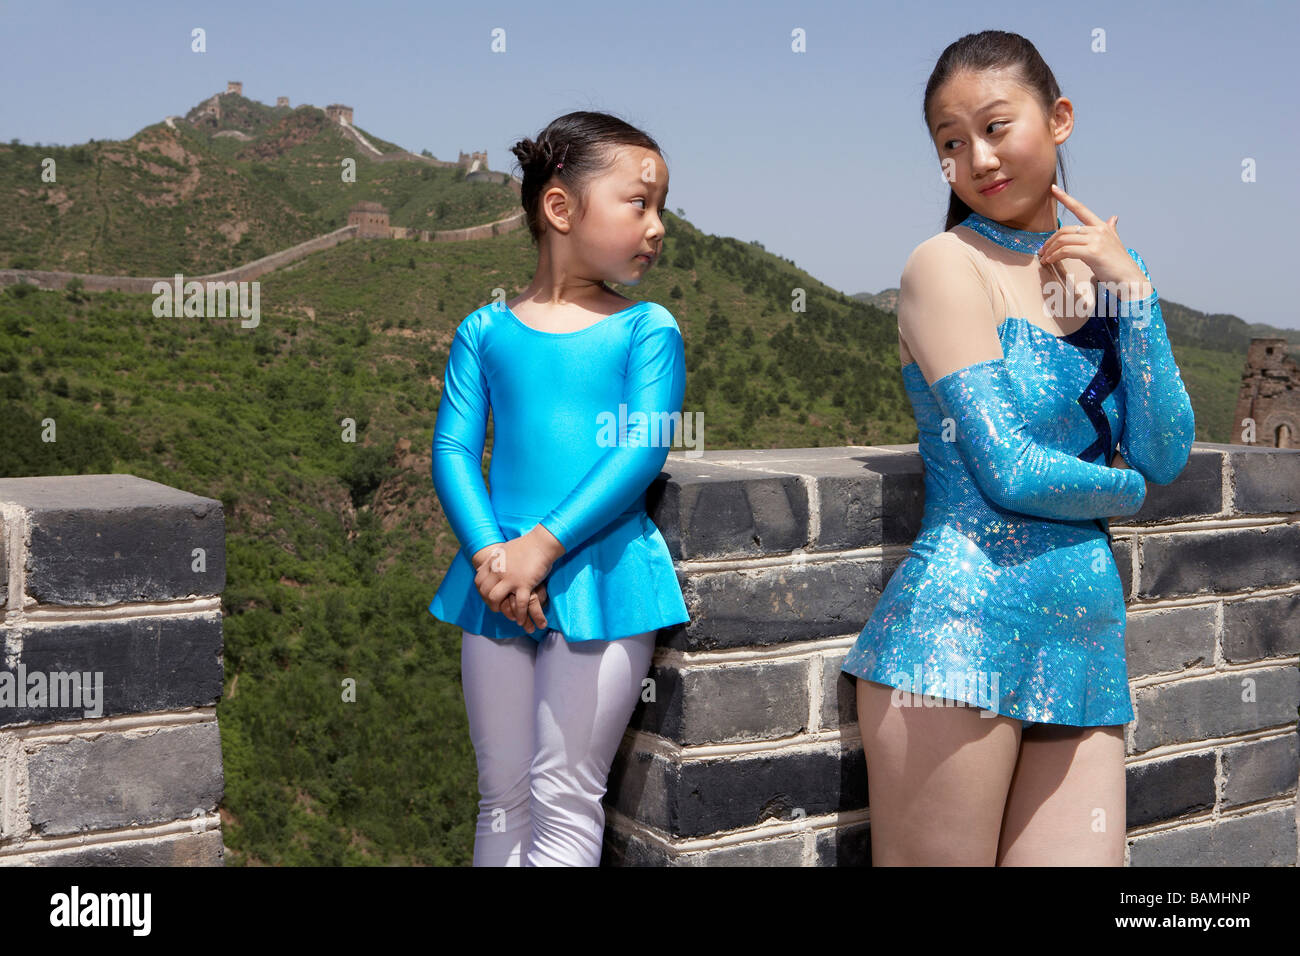 Gymnasts Standing On The Great Wall Of China Looking At Each Other - Stock Image